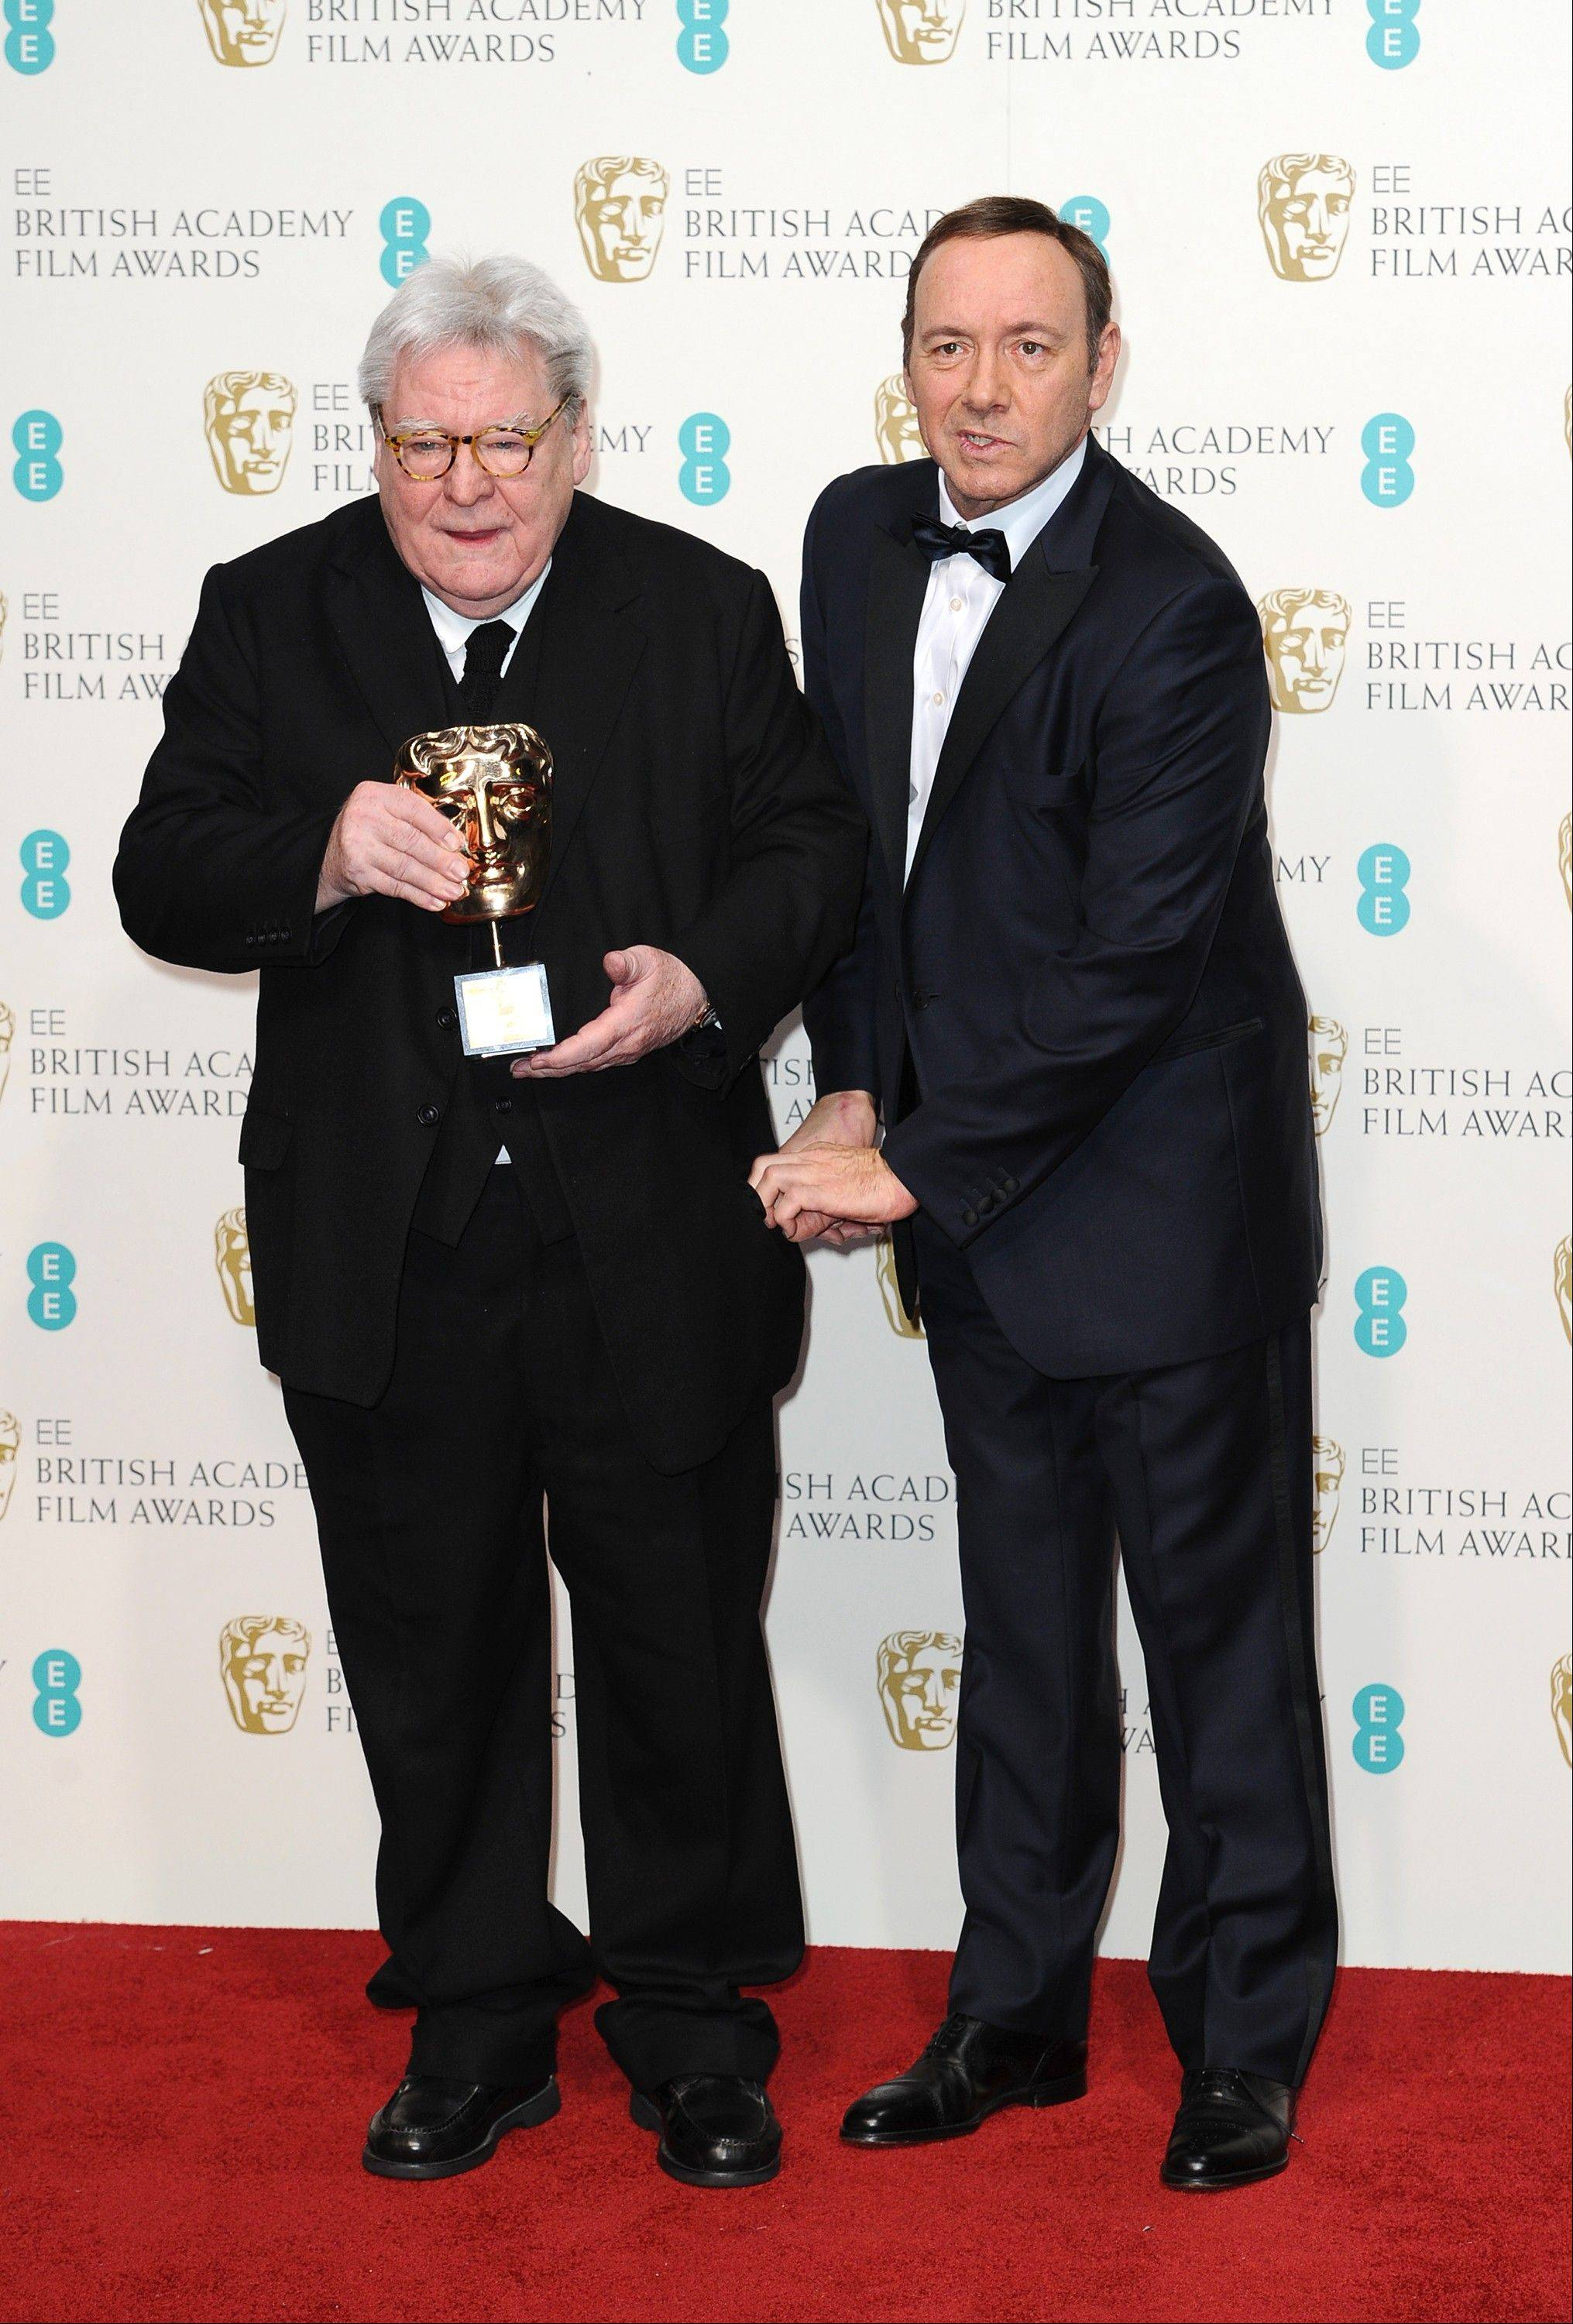 British director Alan Parker, left, with the Fellowship award, and American producer-actor Kevin Spacey pose backstage at the BAFTA Film Awards at the Royal Opera House on Sunday, Feb. 10, 2013, in London.